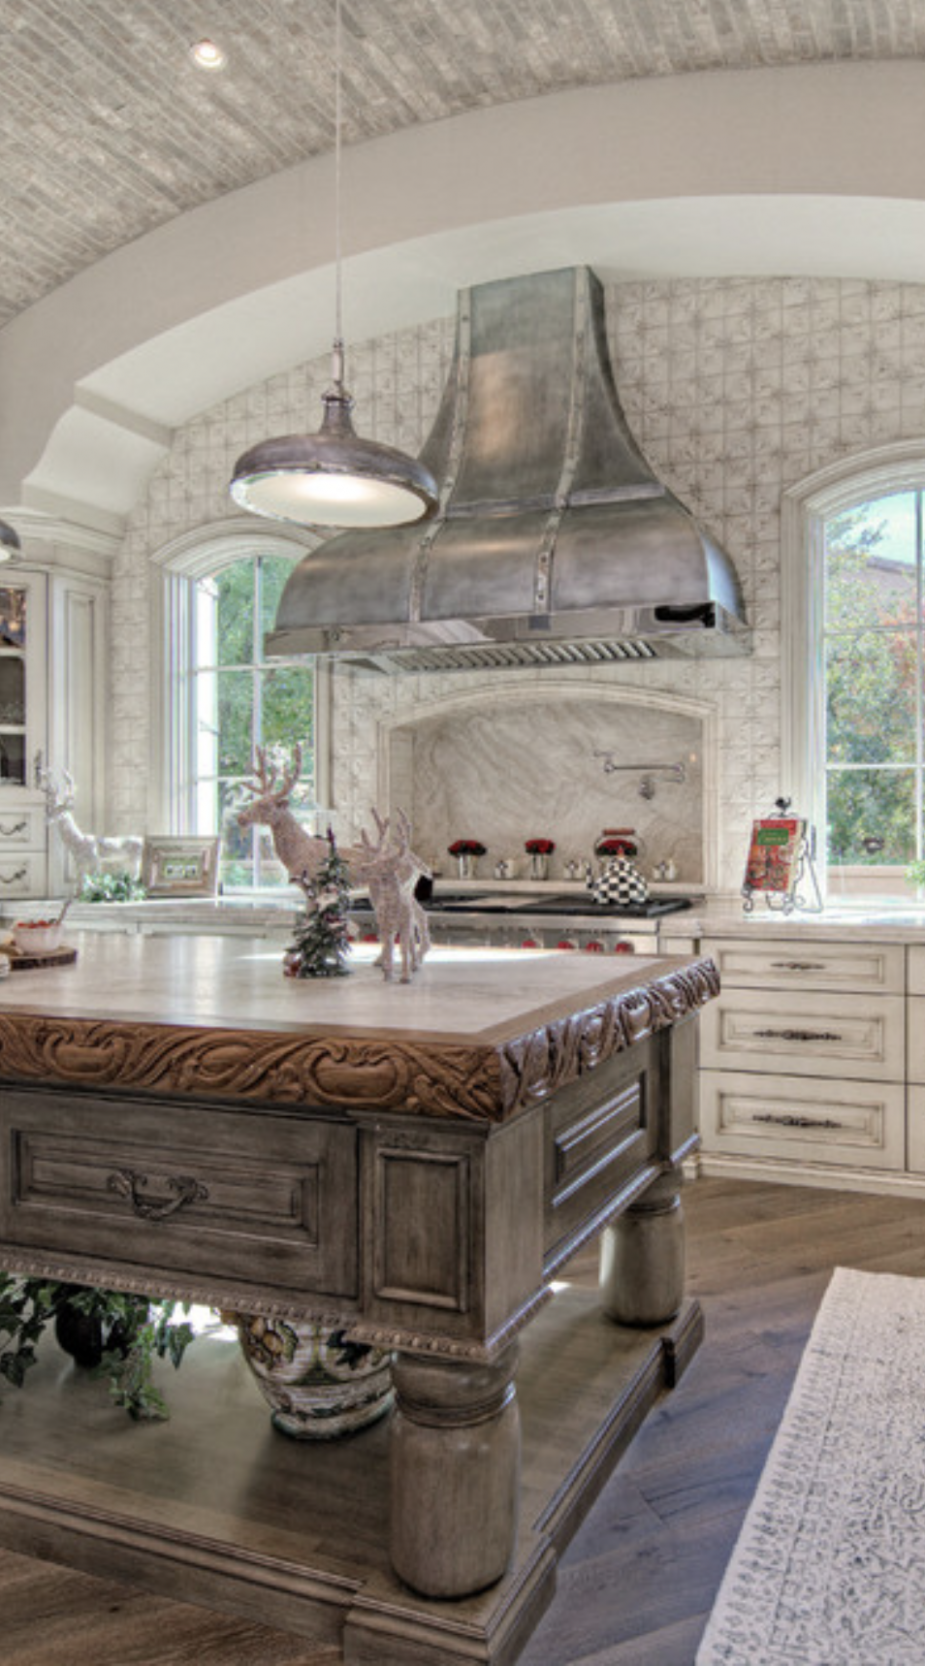 OLD WORLD KITCHEN with their large cooking hearths or grottos and  - World Kitchen Cabinets